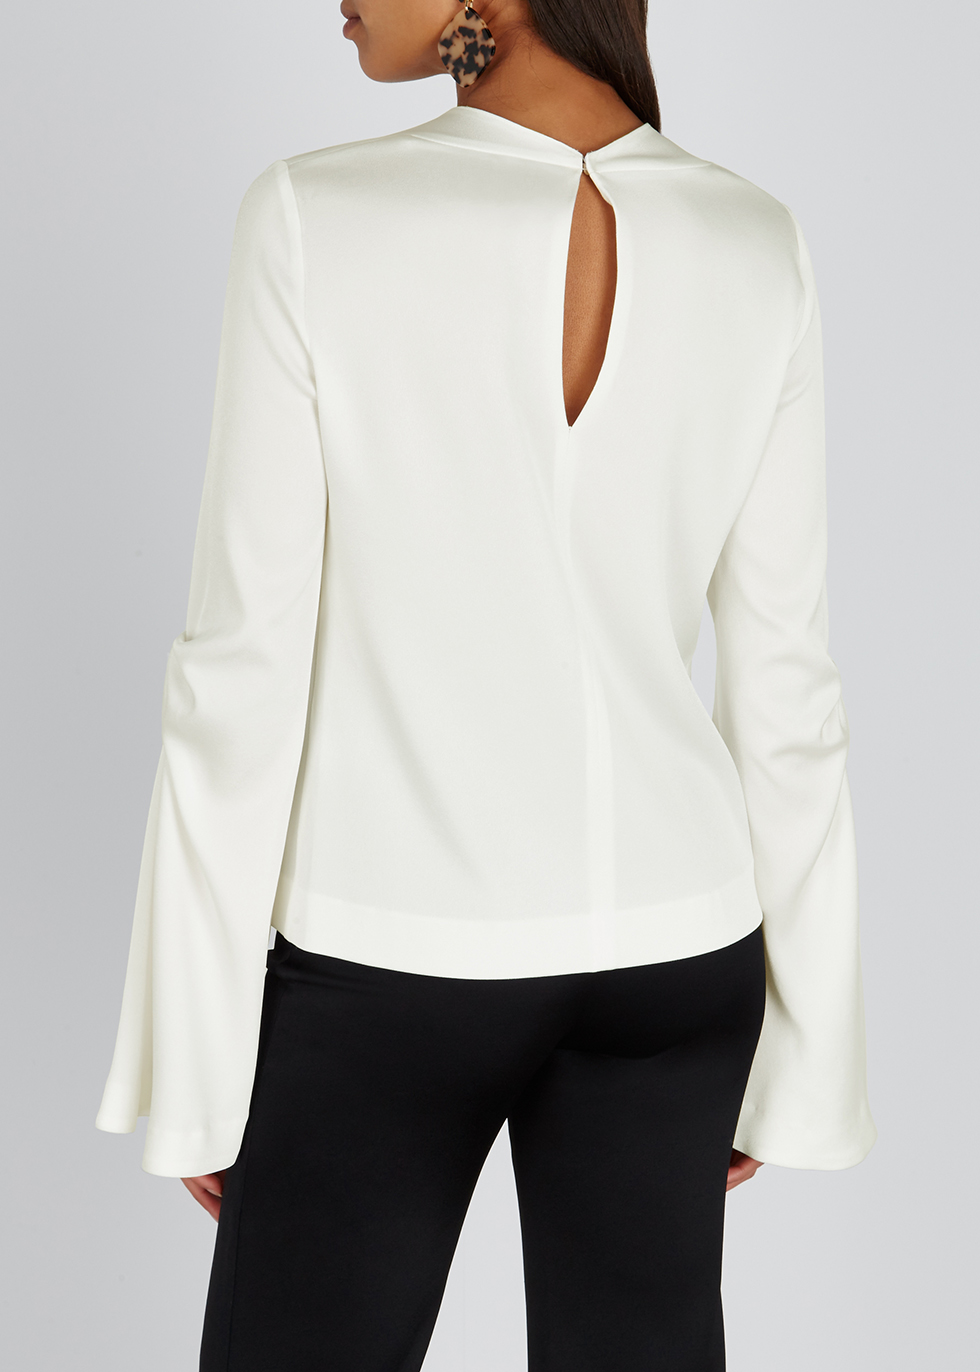 Orchid white satin top - Galvan